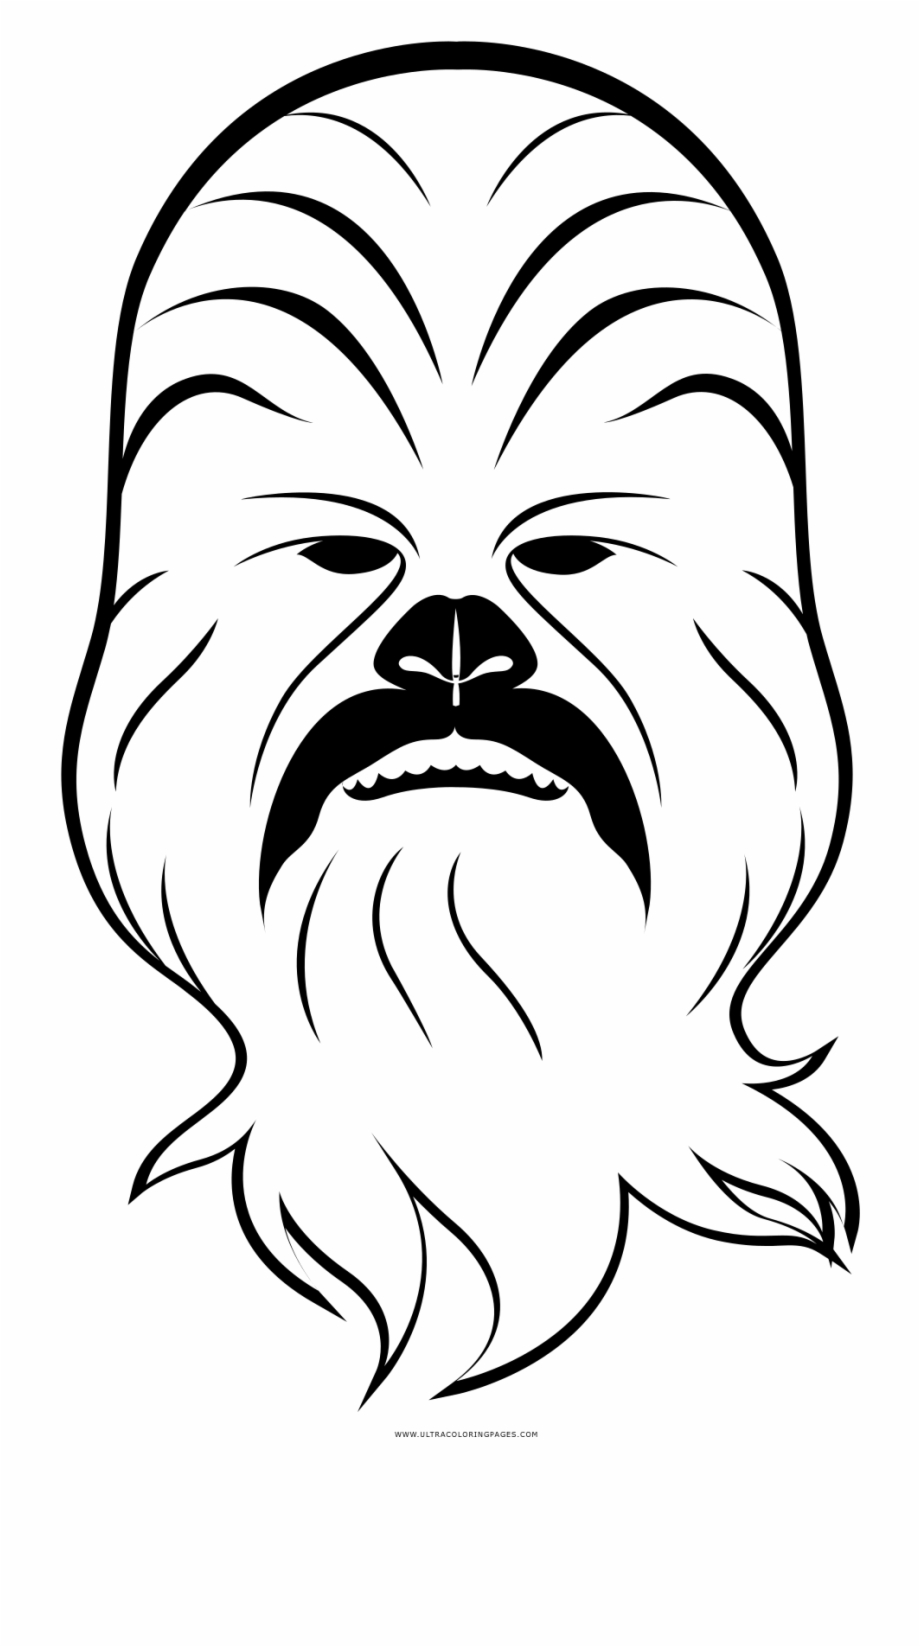 Coloring page desenho para. Chewbacca clipart black and white